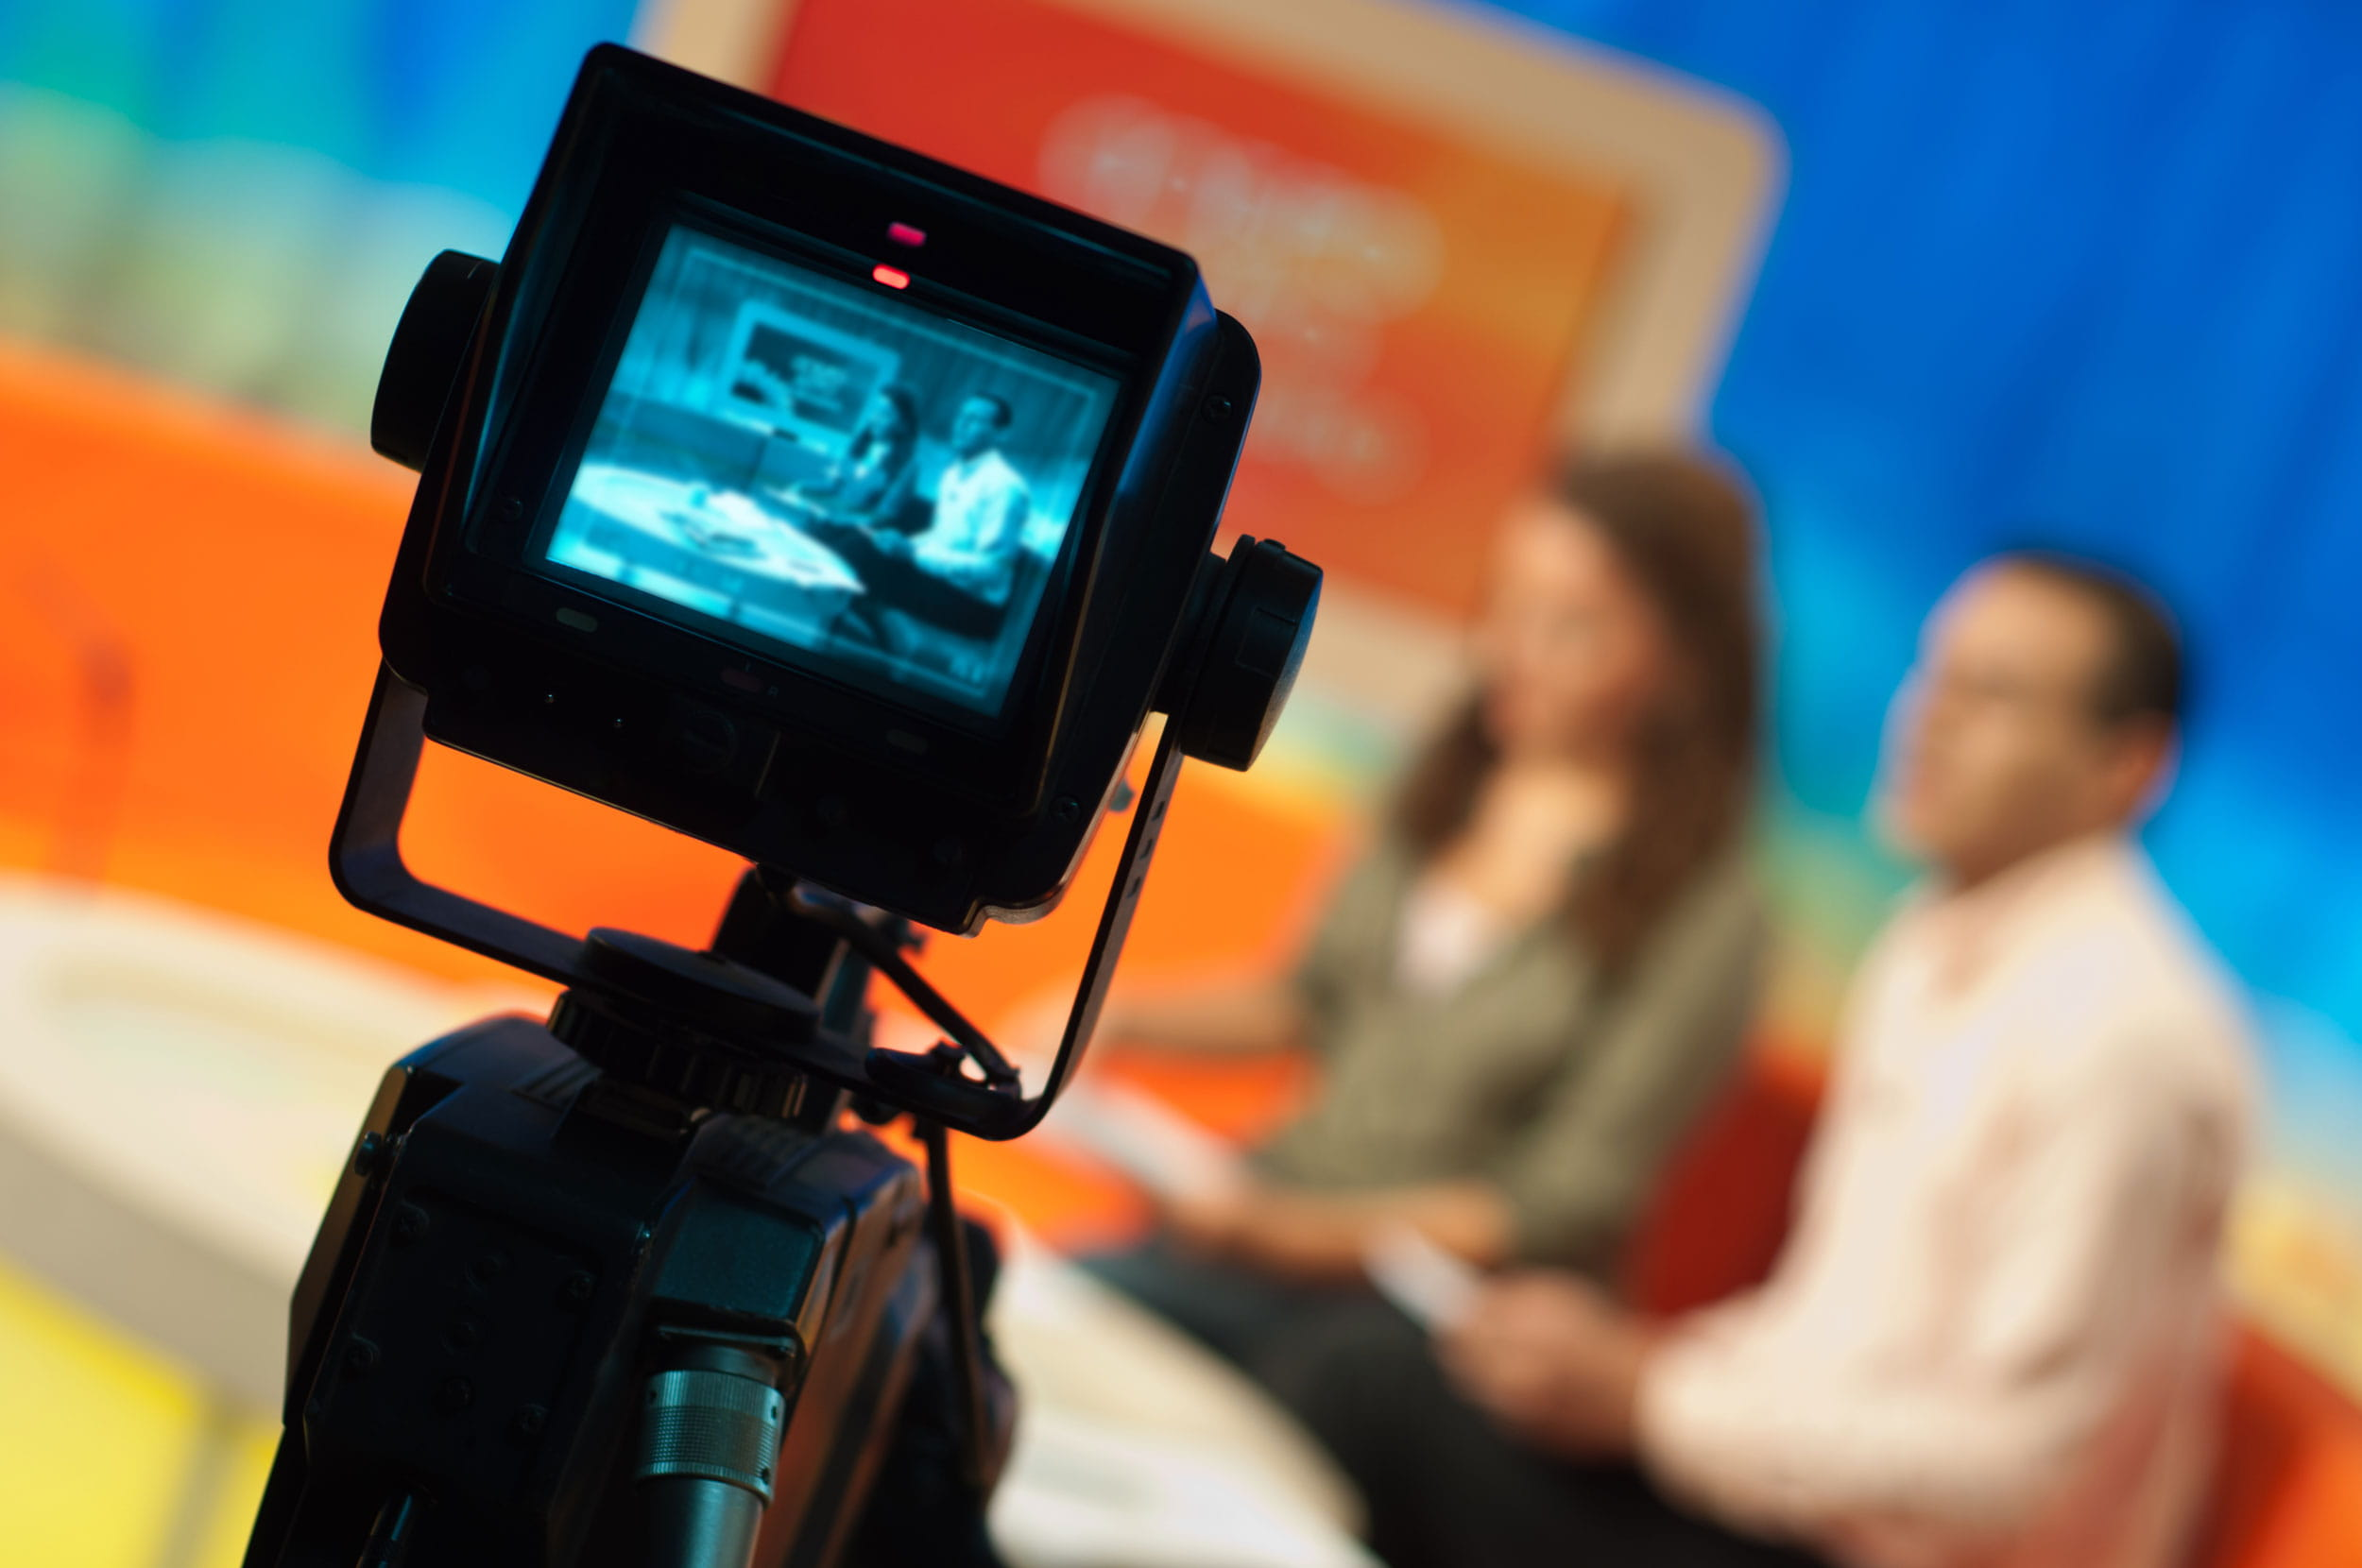 How To Find Work As A TV Presenter